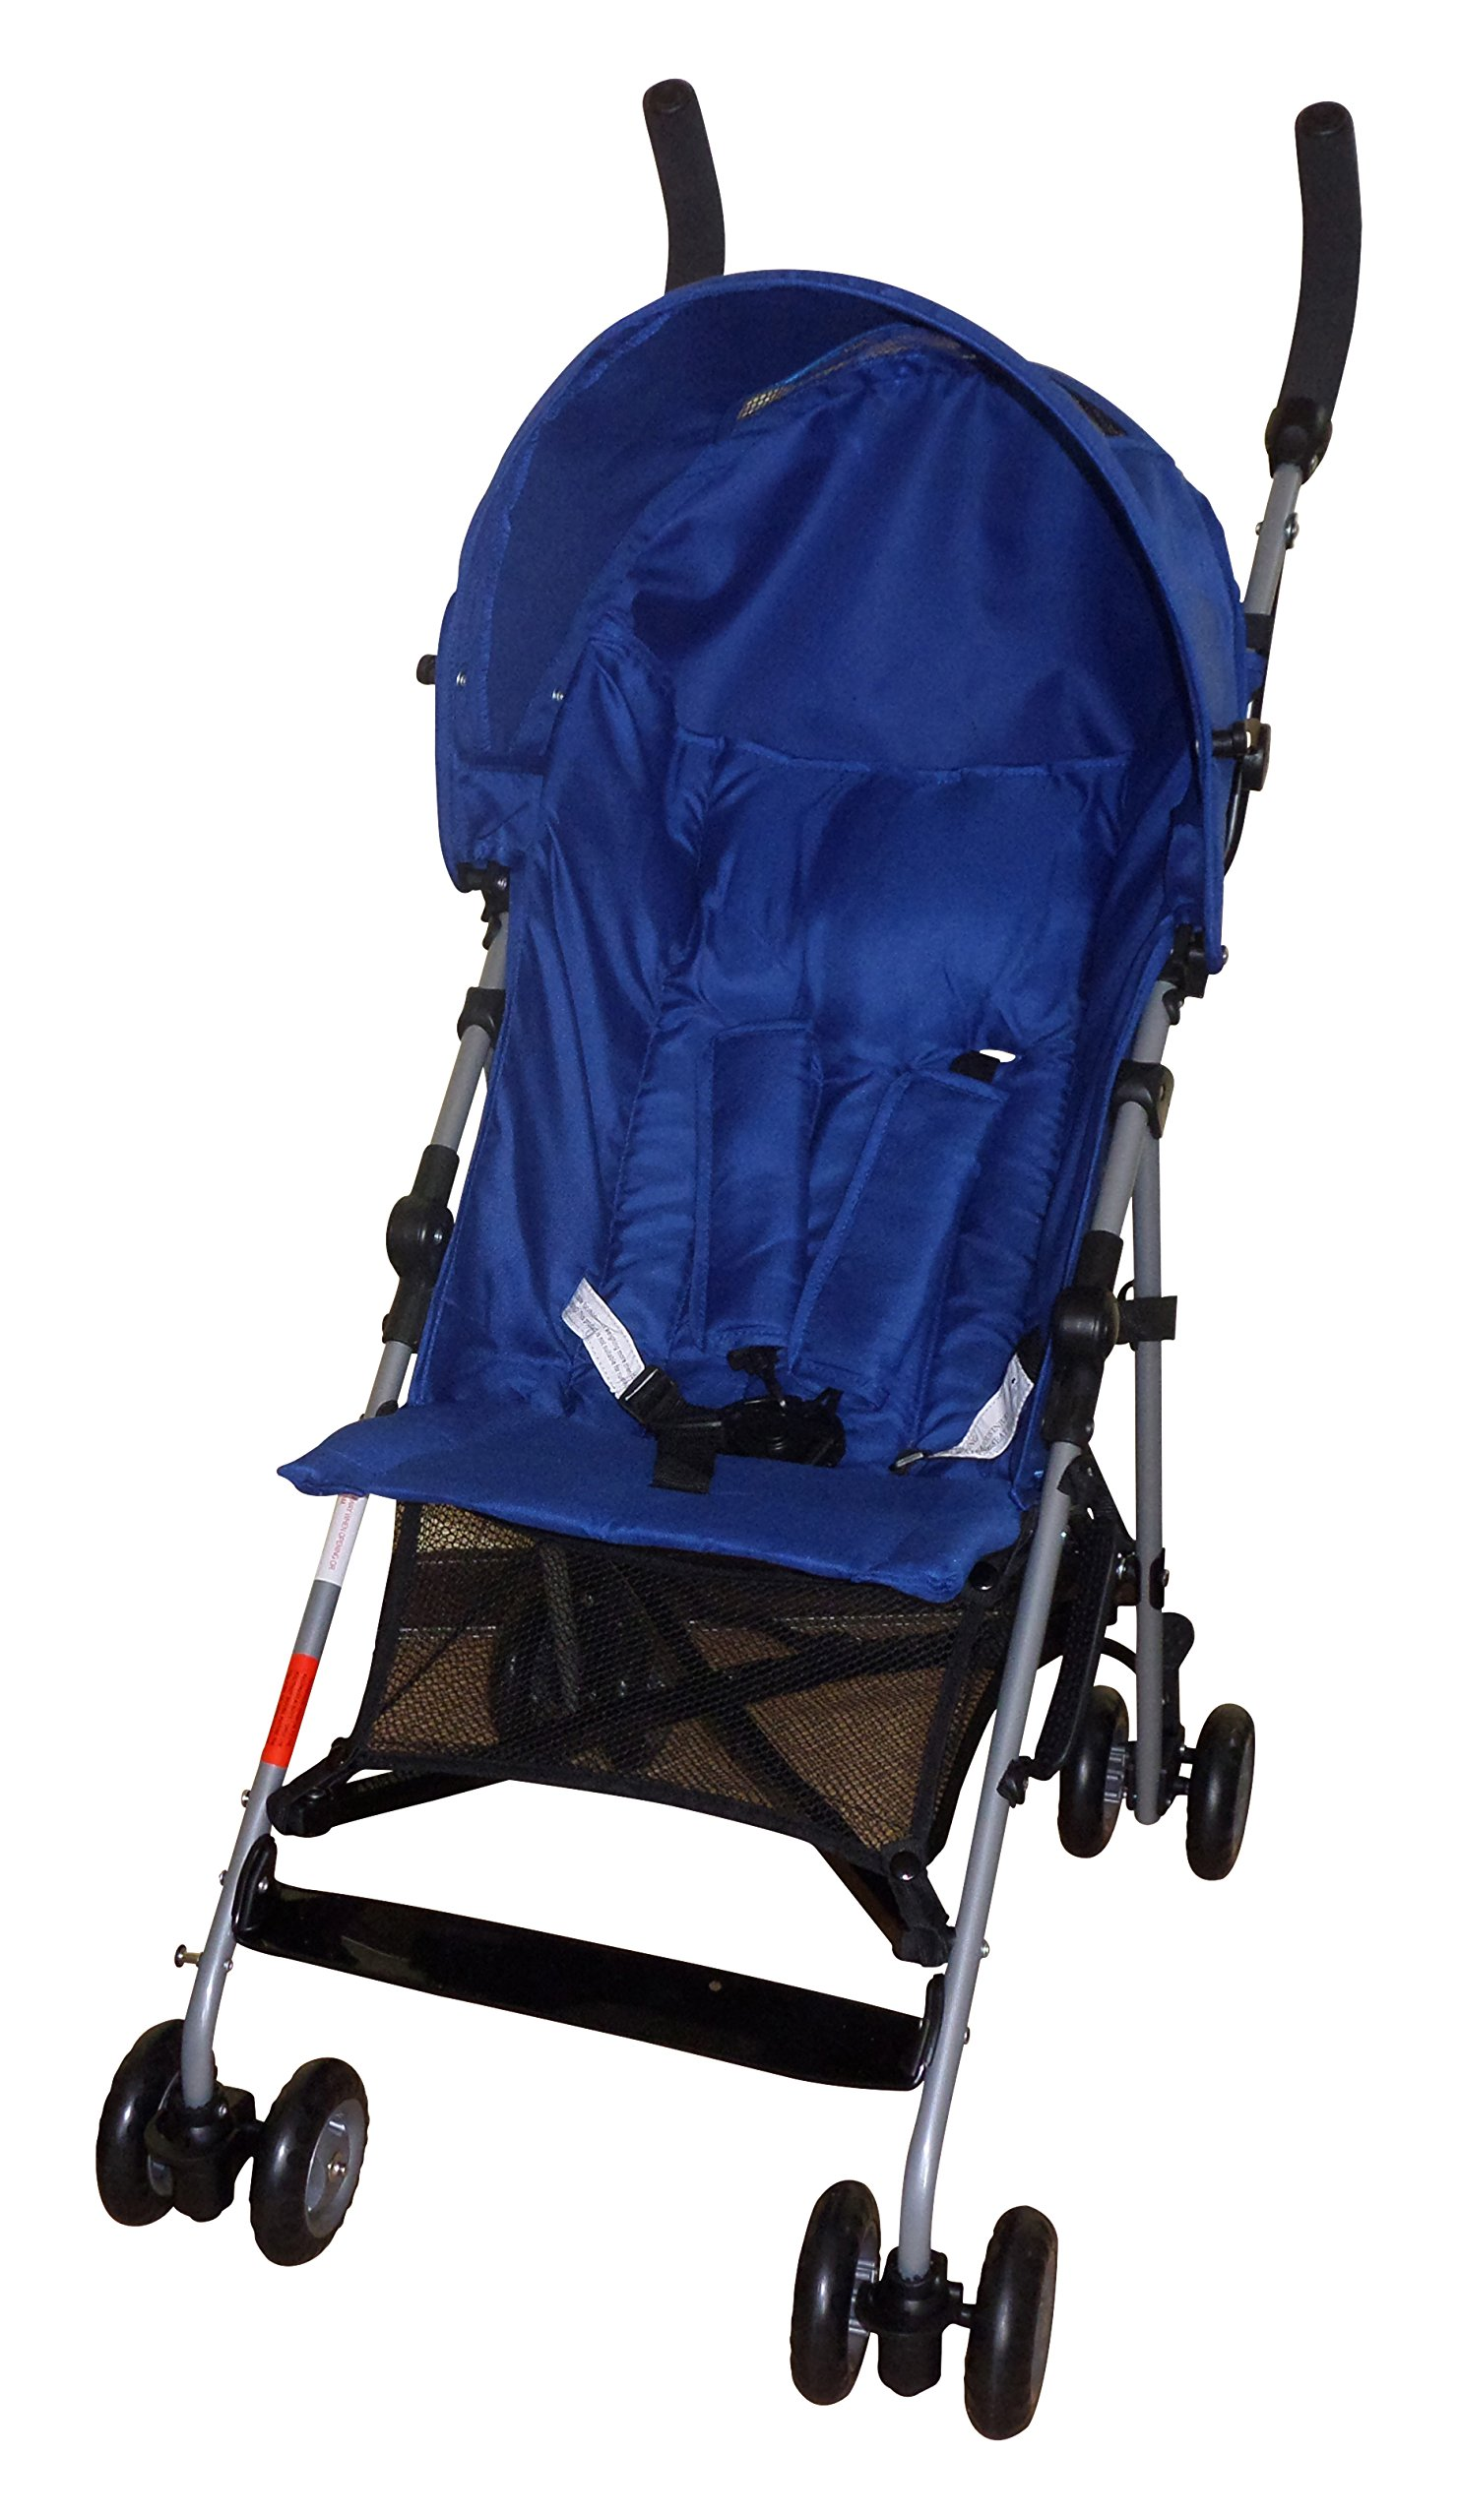 Babyco Trend Light Weight Stroller (Blue)  Light weight stroller Full raincover included Suitable for children from 6 months to max 15kgs 1